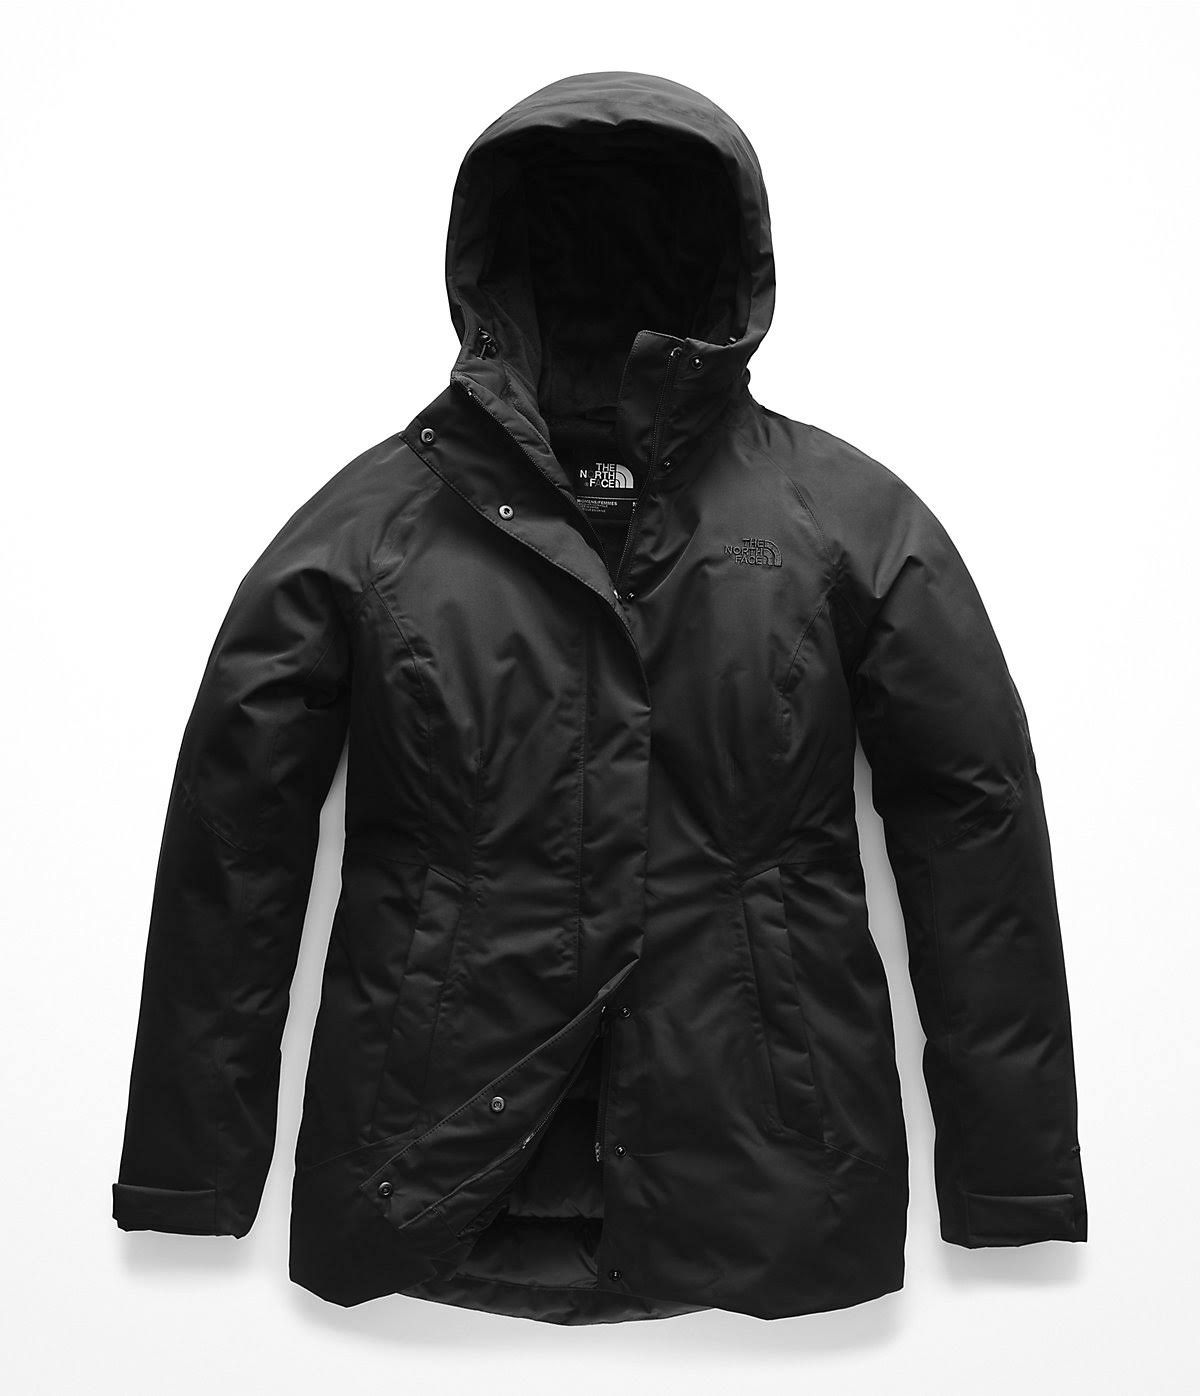 The Tnf Face Damen S Toastie Schwarz Parka North Coastie SrUBwxFSq